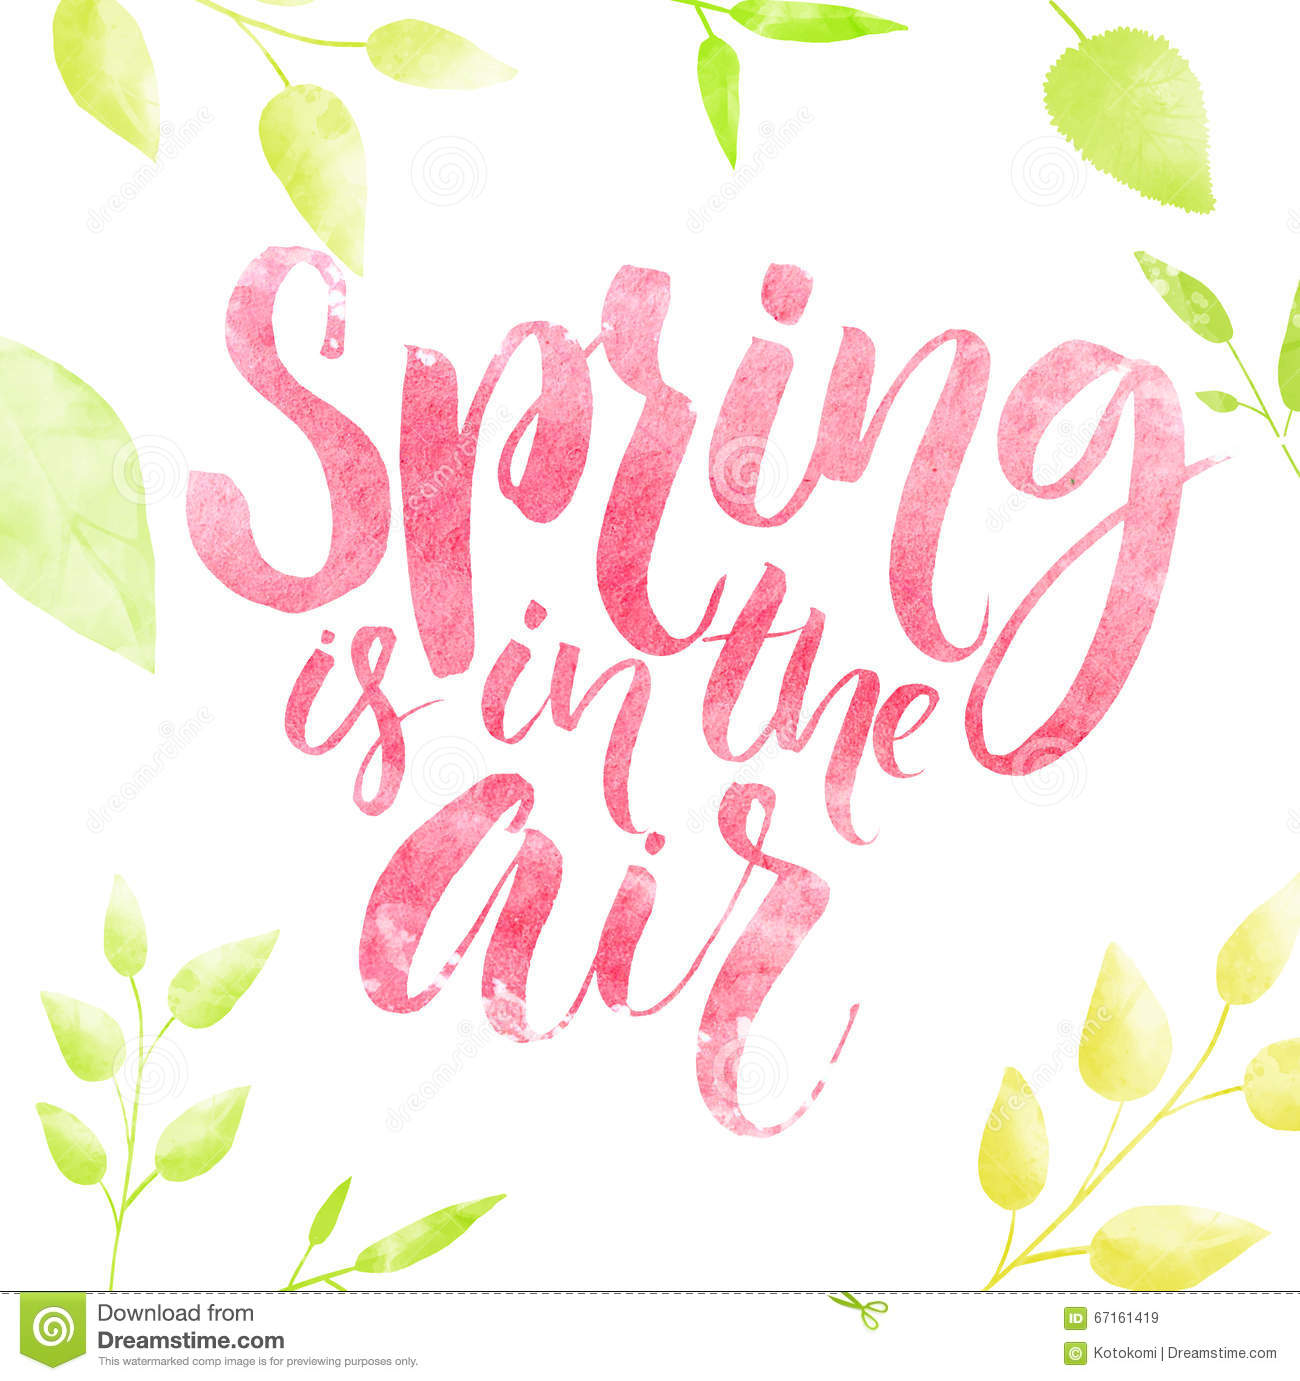 spring is in the air watercolor lettering in green leaves